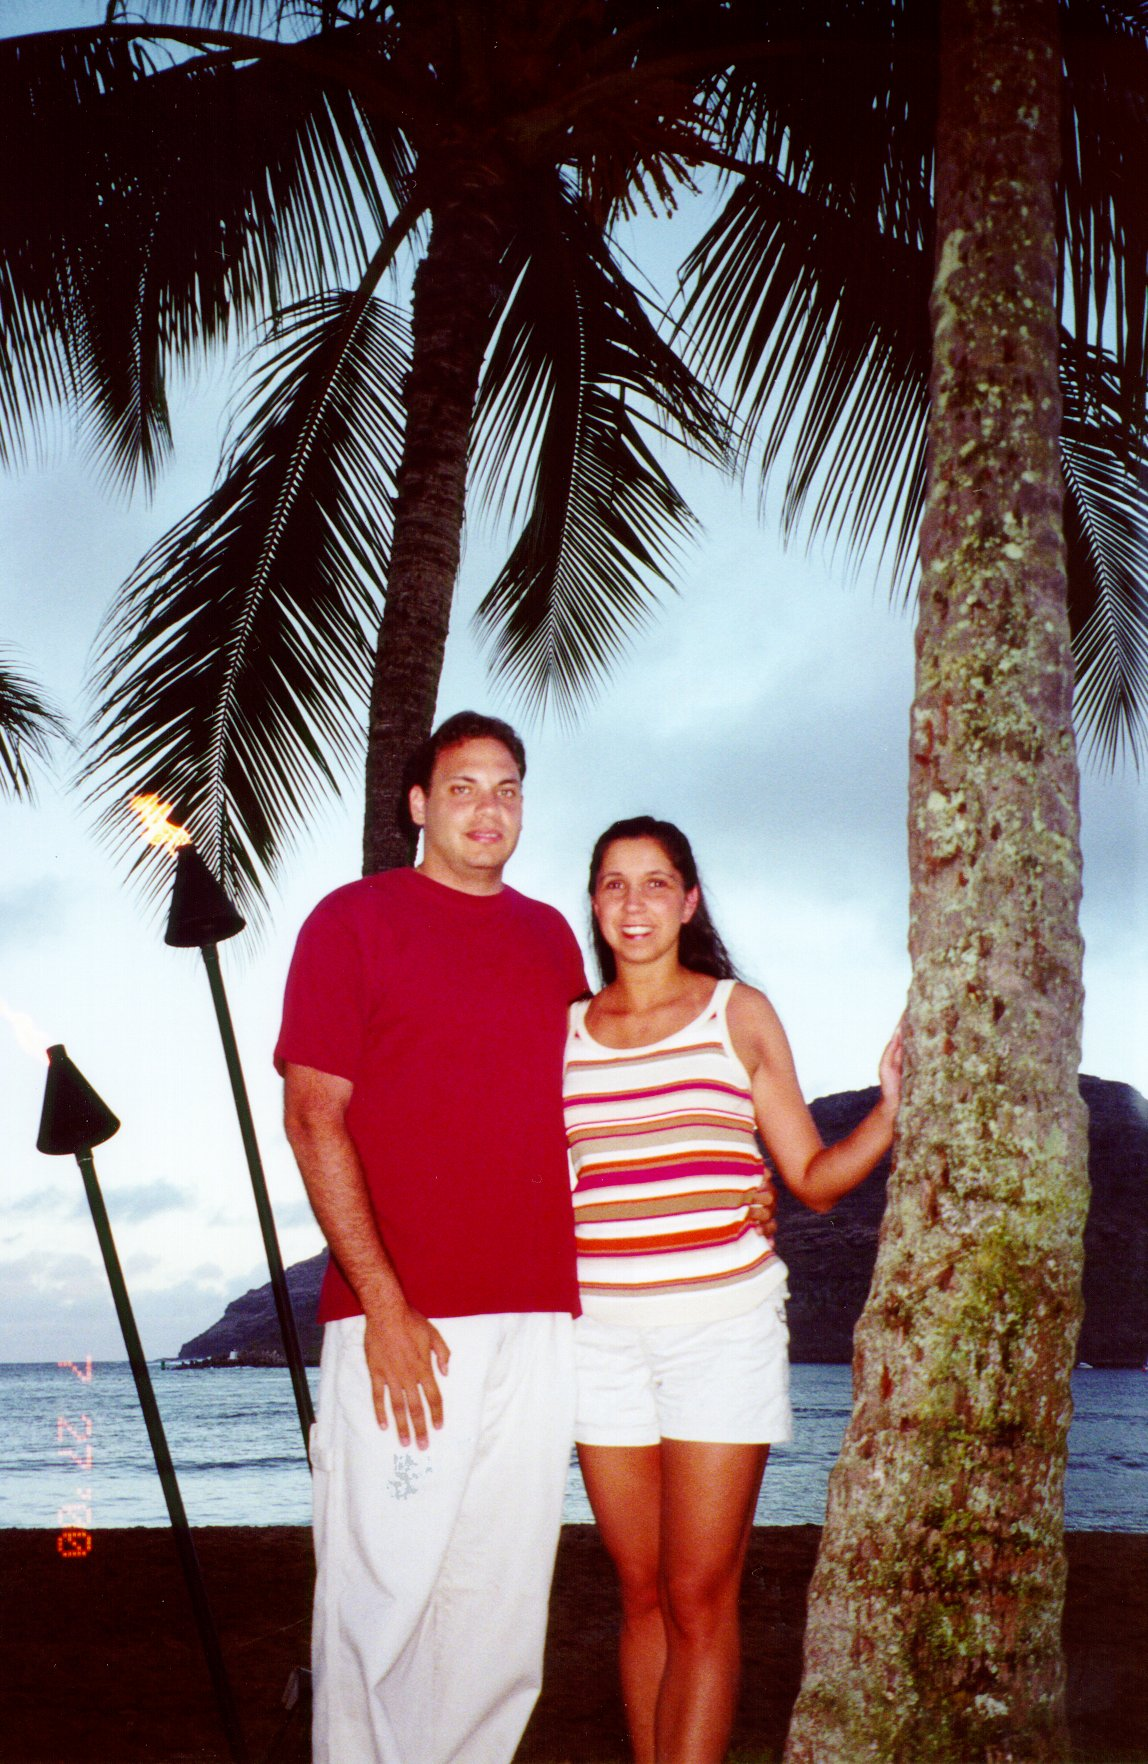 Gilda and John in Hawaii; Actual size=240 pixels wide